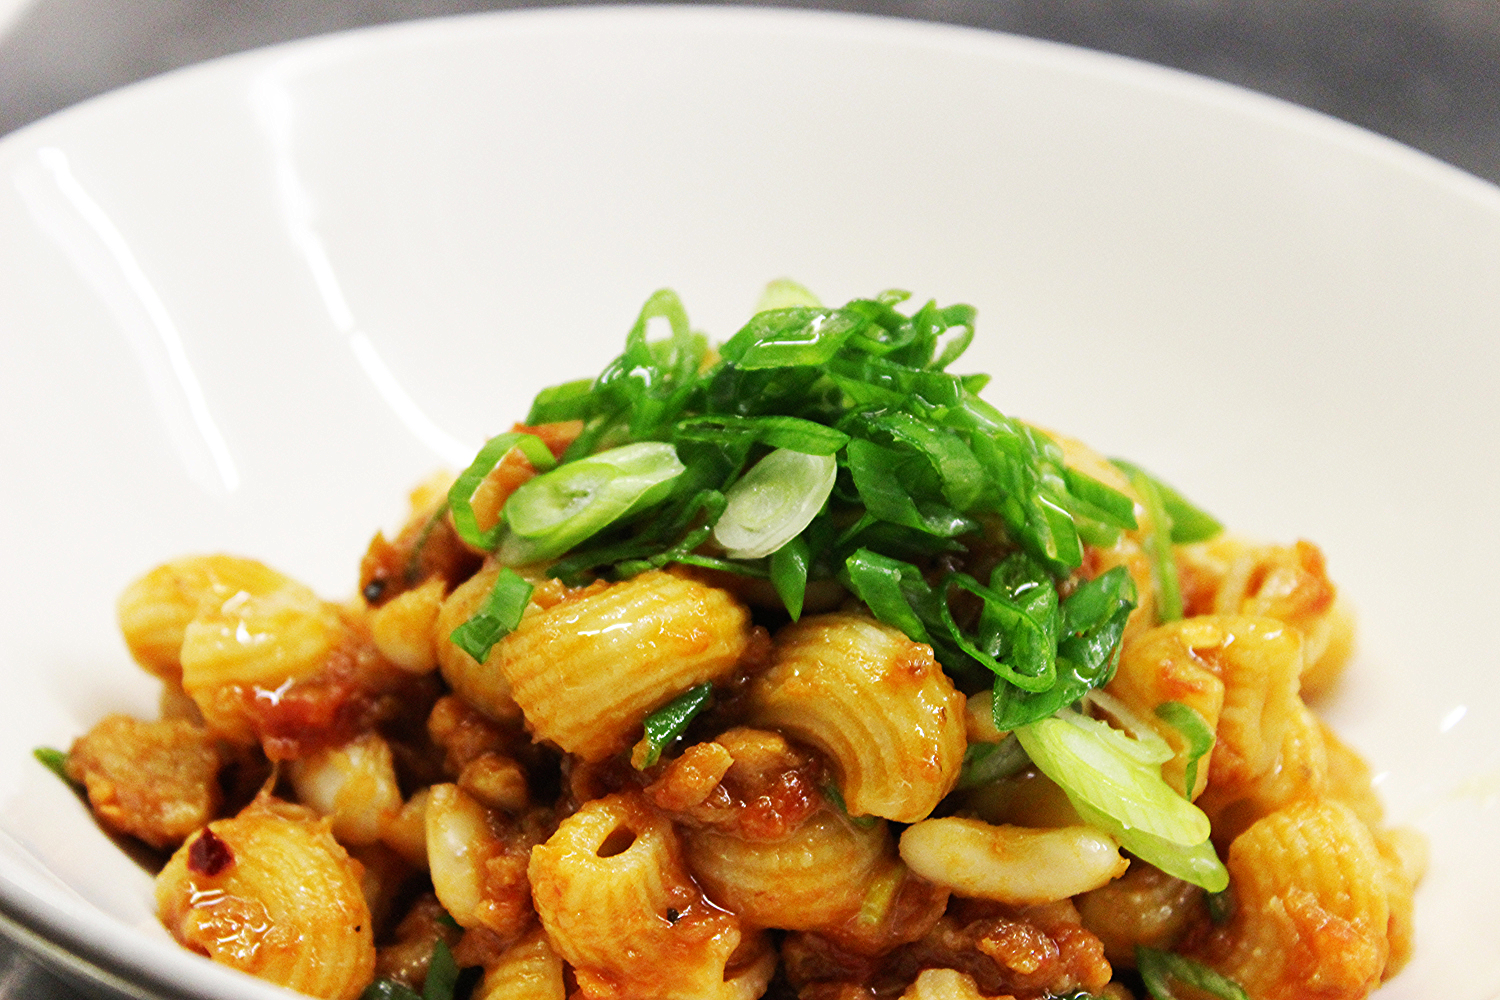 Lumache pasta with monkfish ragu and cannelini beans. Source: Runner & Stone